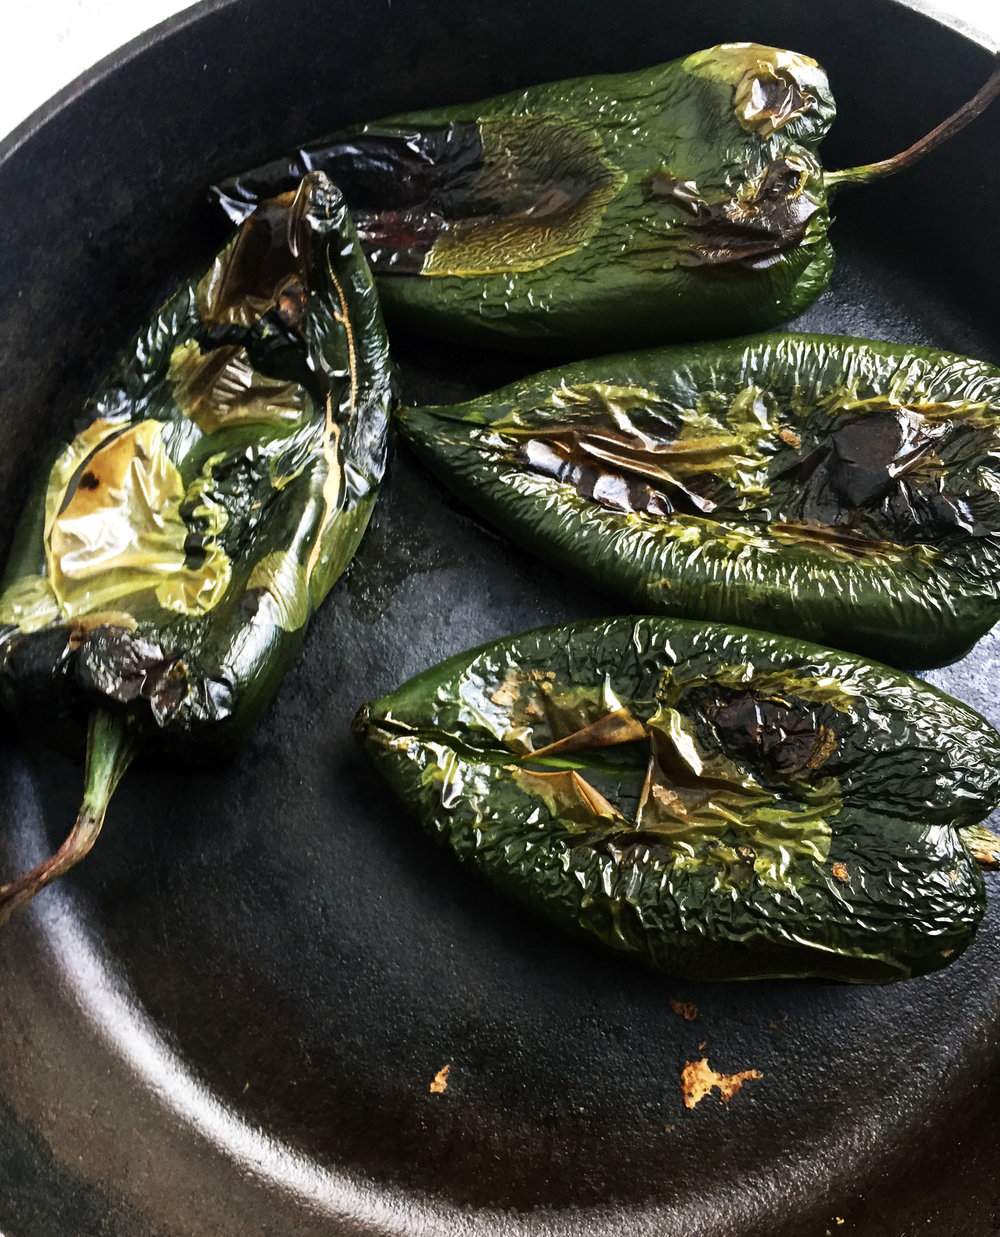 2. Next, place the poblanos in a castiron pan, broil for a few minutes in the oven then switch to pan and cook on high heat. You want to burn the poblanos until the skin starts to crack and peel off. It should take another 6-8 minutes.